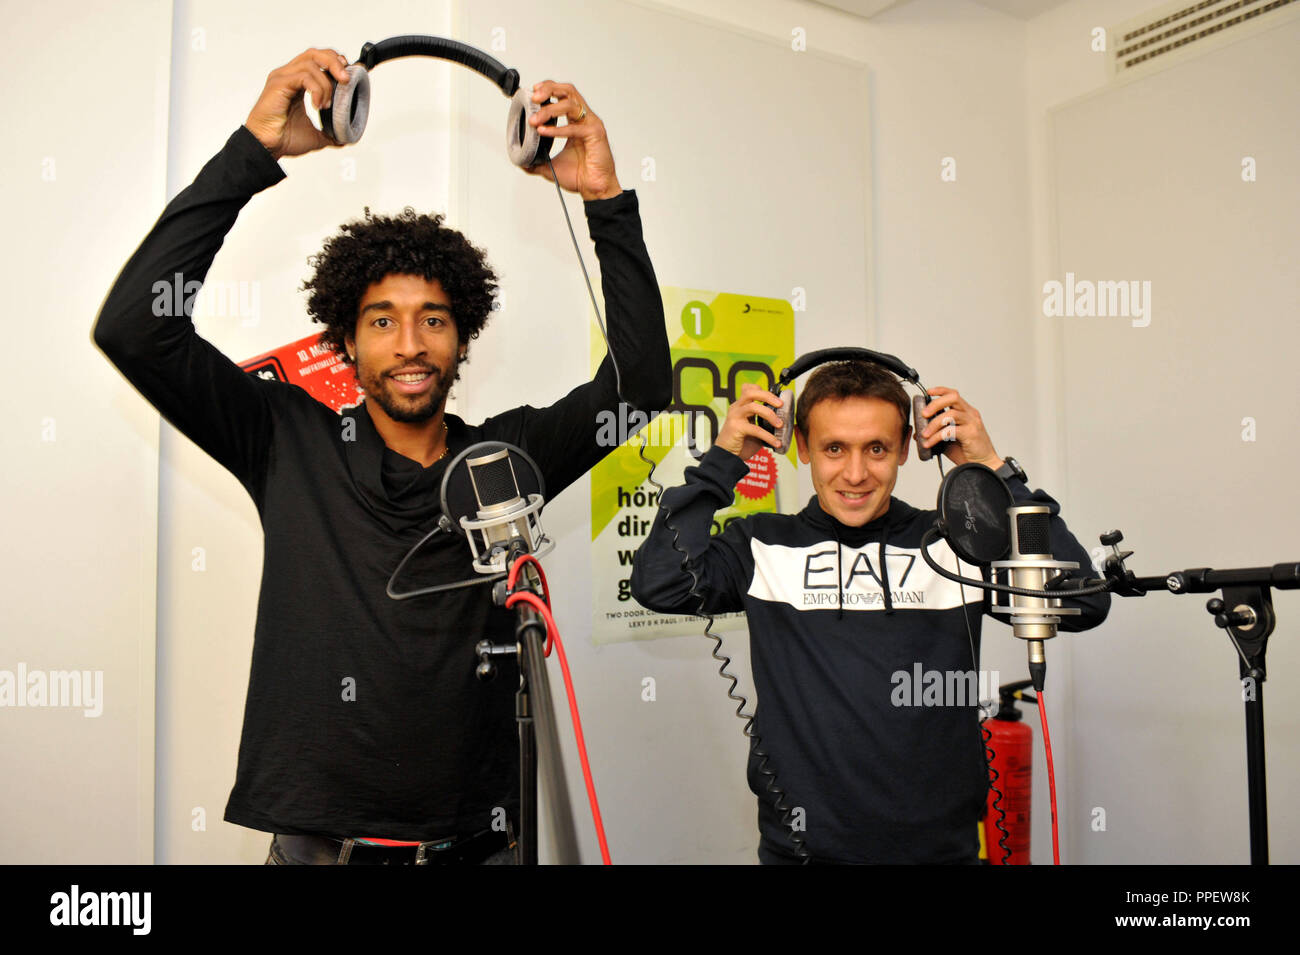 The Brazilian professional football players Dante (left) and Rafinha from Bayern Munich advertise in a broadcast of Radio egoFM the concert project 'Music for Goals', which turns against racism, xenophobia and violence in society. - Stock Image